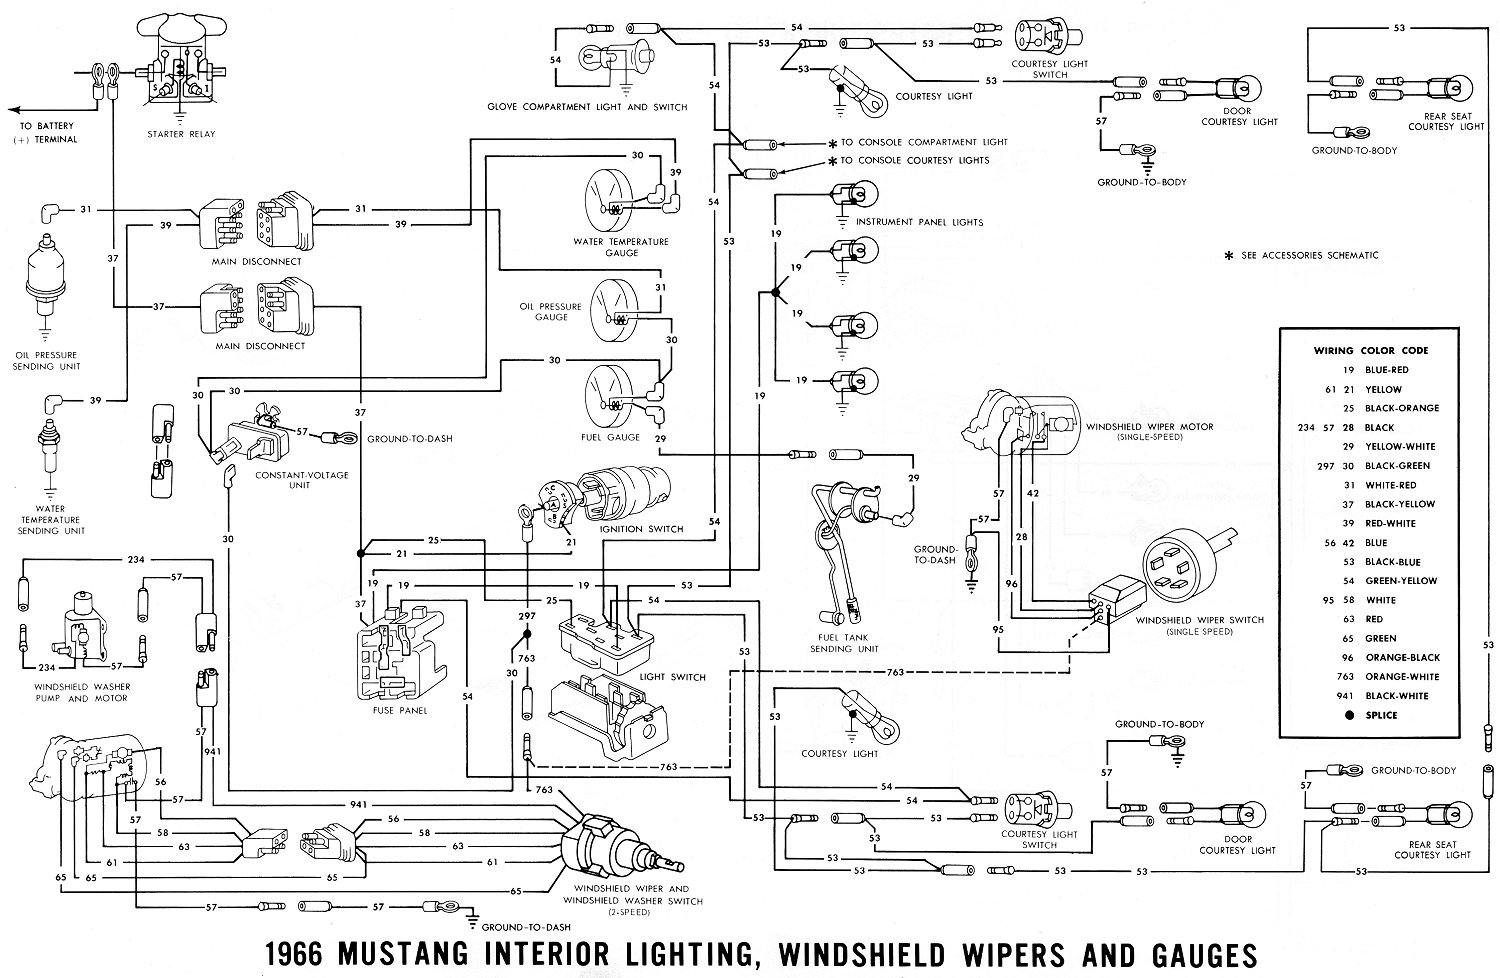 1966 mustang wiring diagrams average joe restoration rh  averagejoerestoration com 1968 Mustang Radio Wiring Diagrams 1968 Mustang  Turn Signal Wiring Diagram